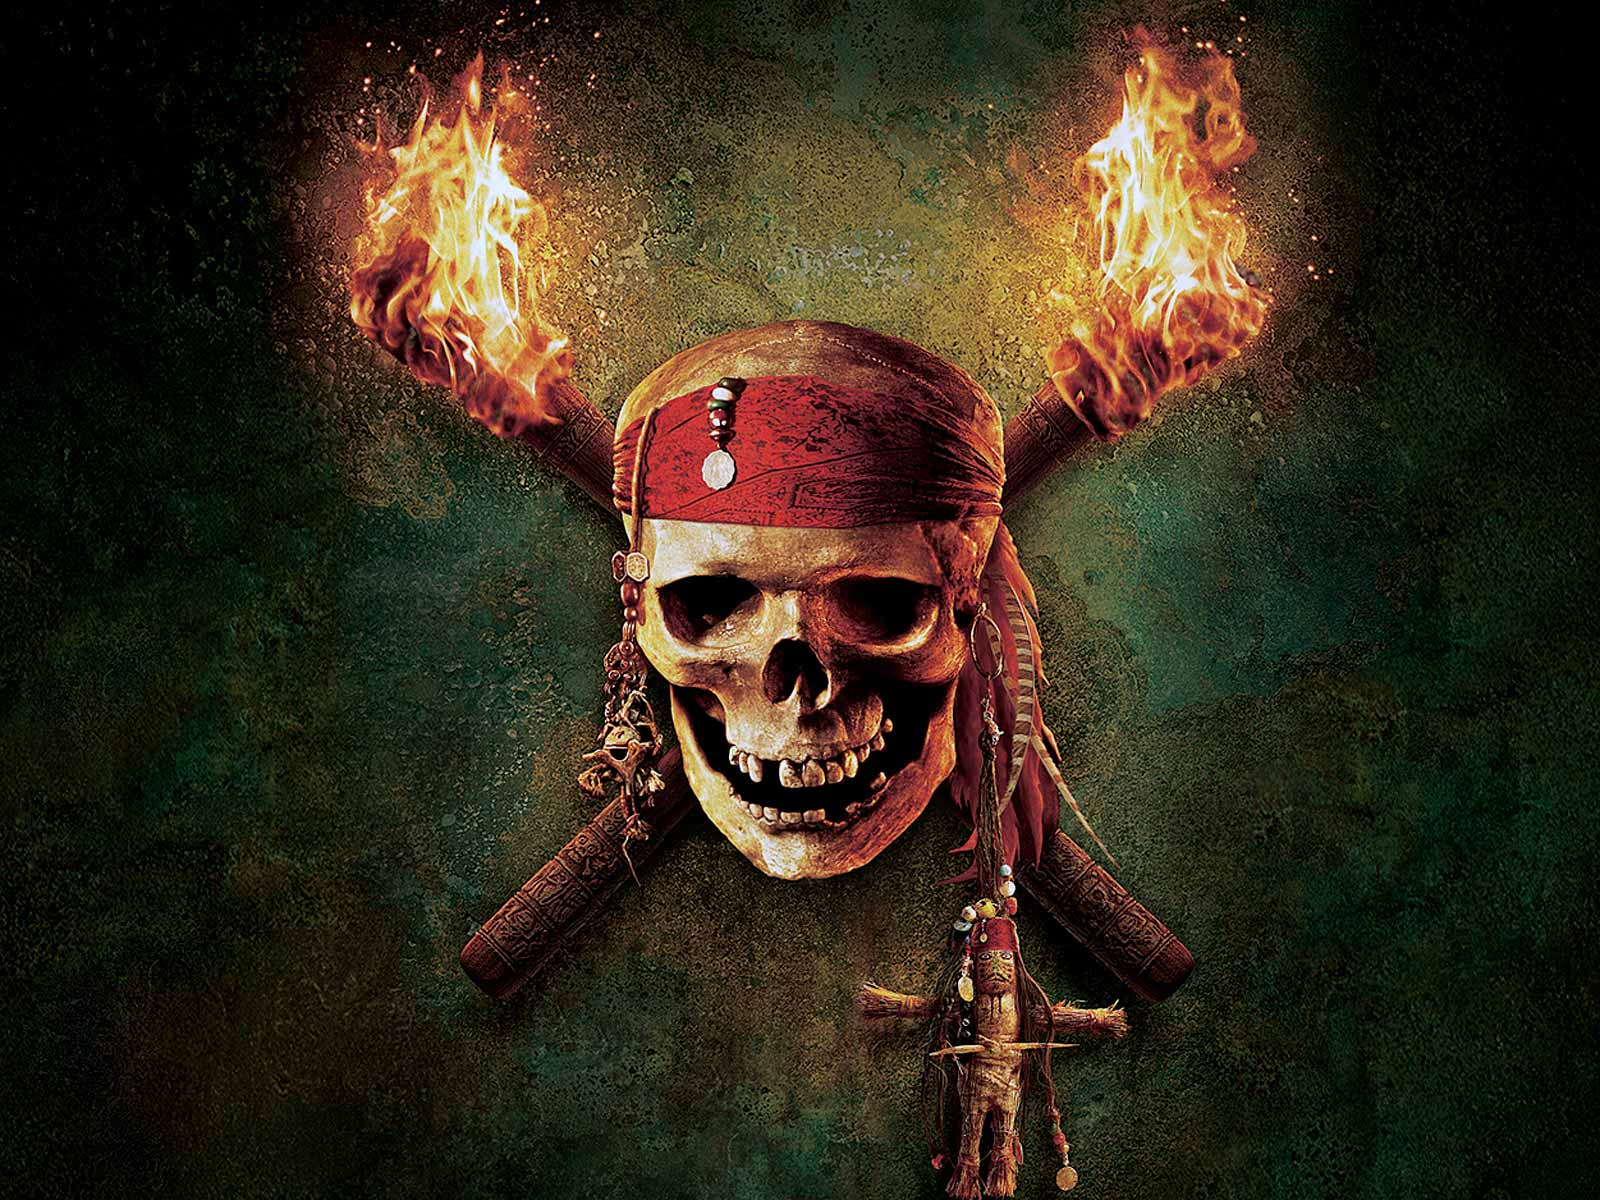 Pirates Of The Caribbean Wallpapers Image Wallpapers